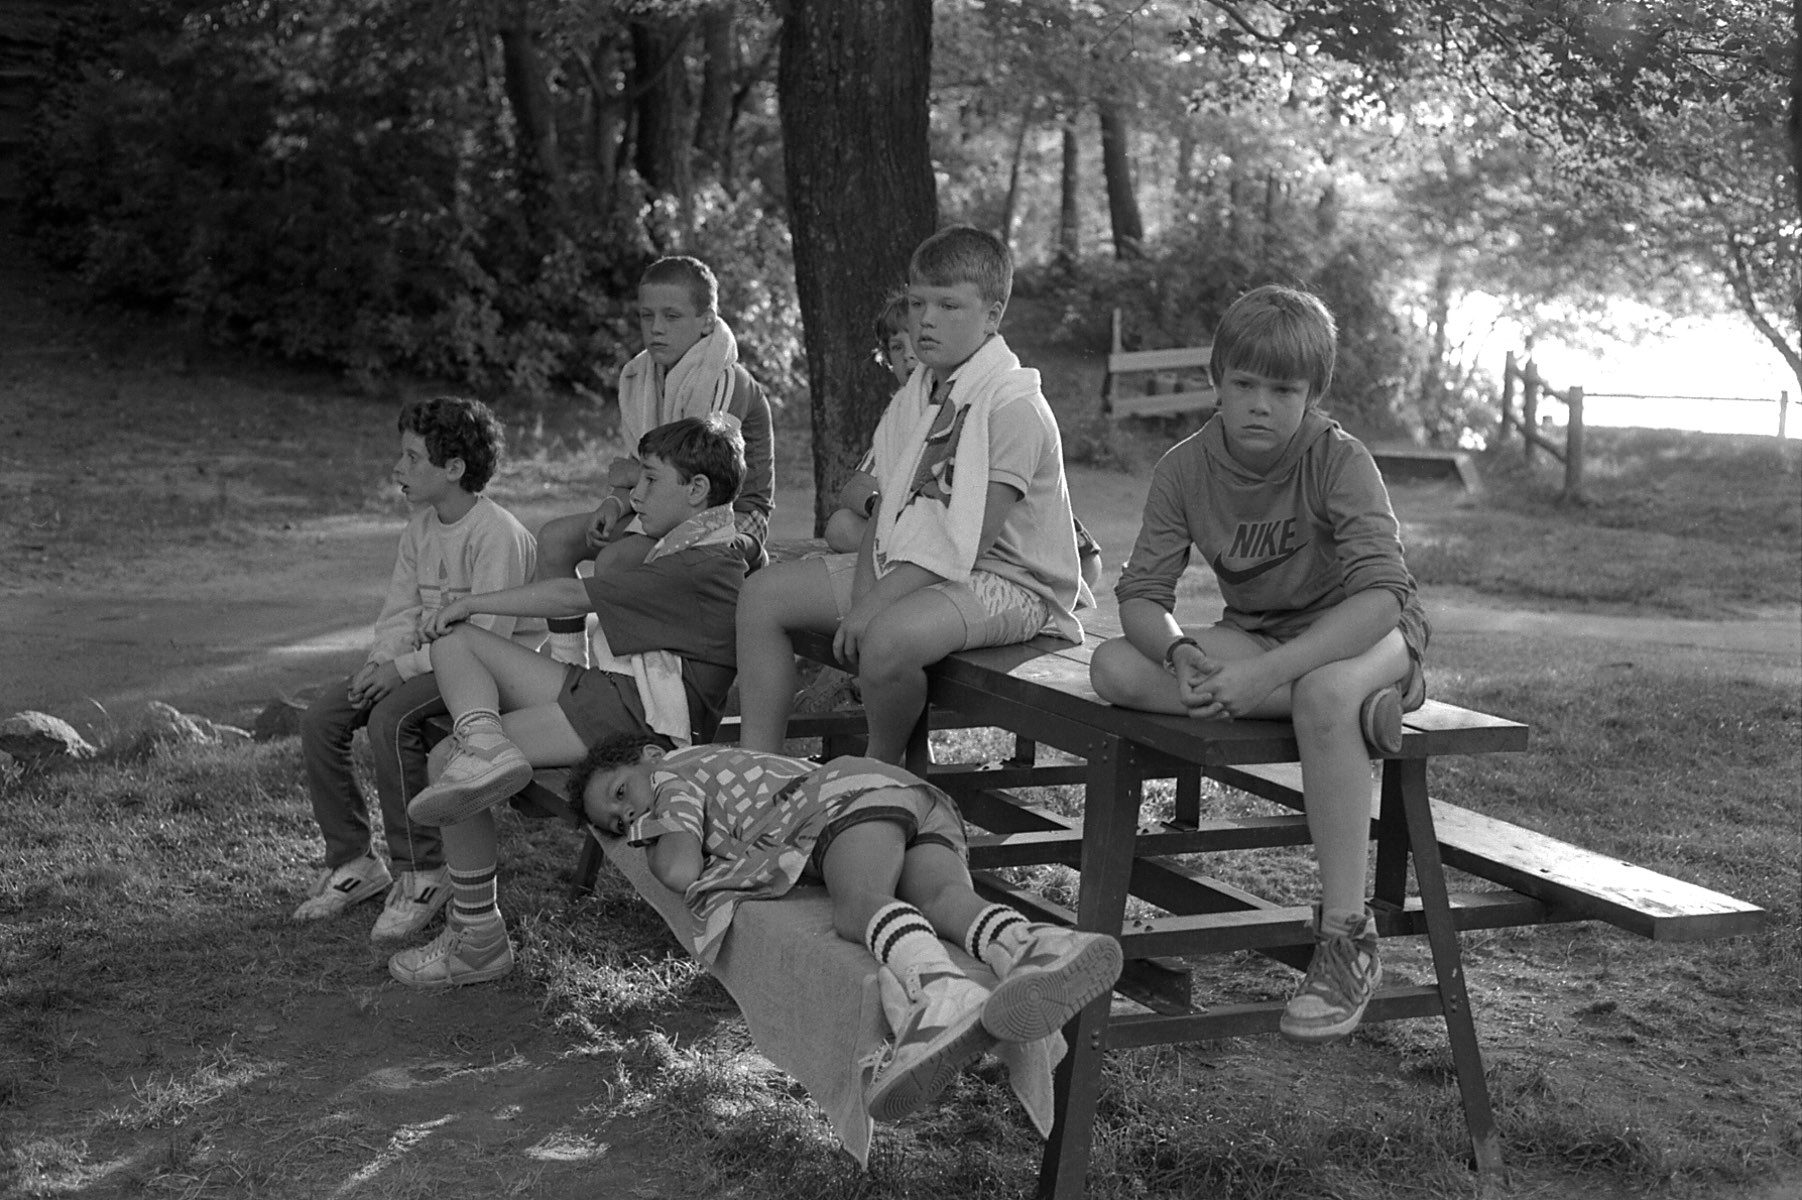 Vintage scenes of life at an American summer camp